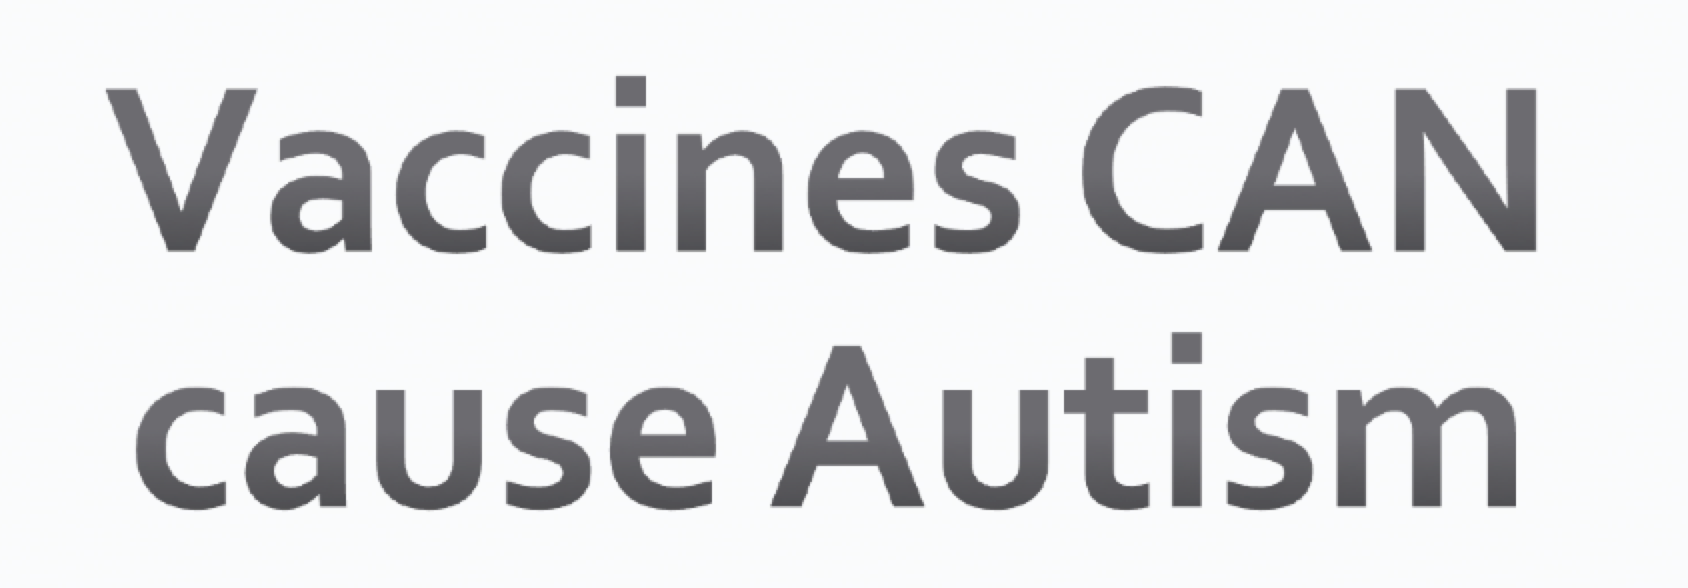 case study autism and vaccines There's a lot of talk in the media about vaccines and autism study, fears about a possible vaccine-autism link case against the mmr vaccine.